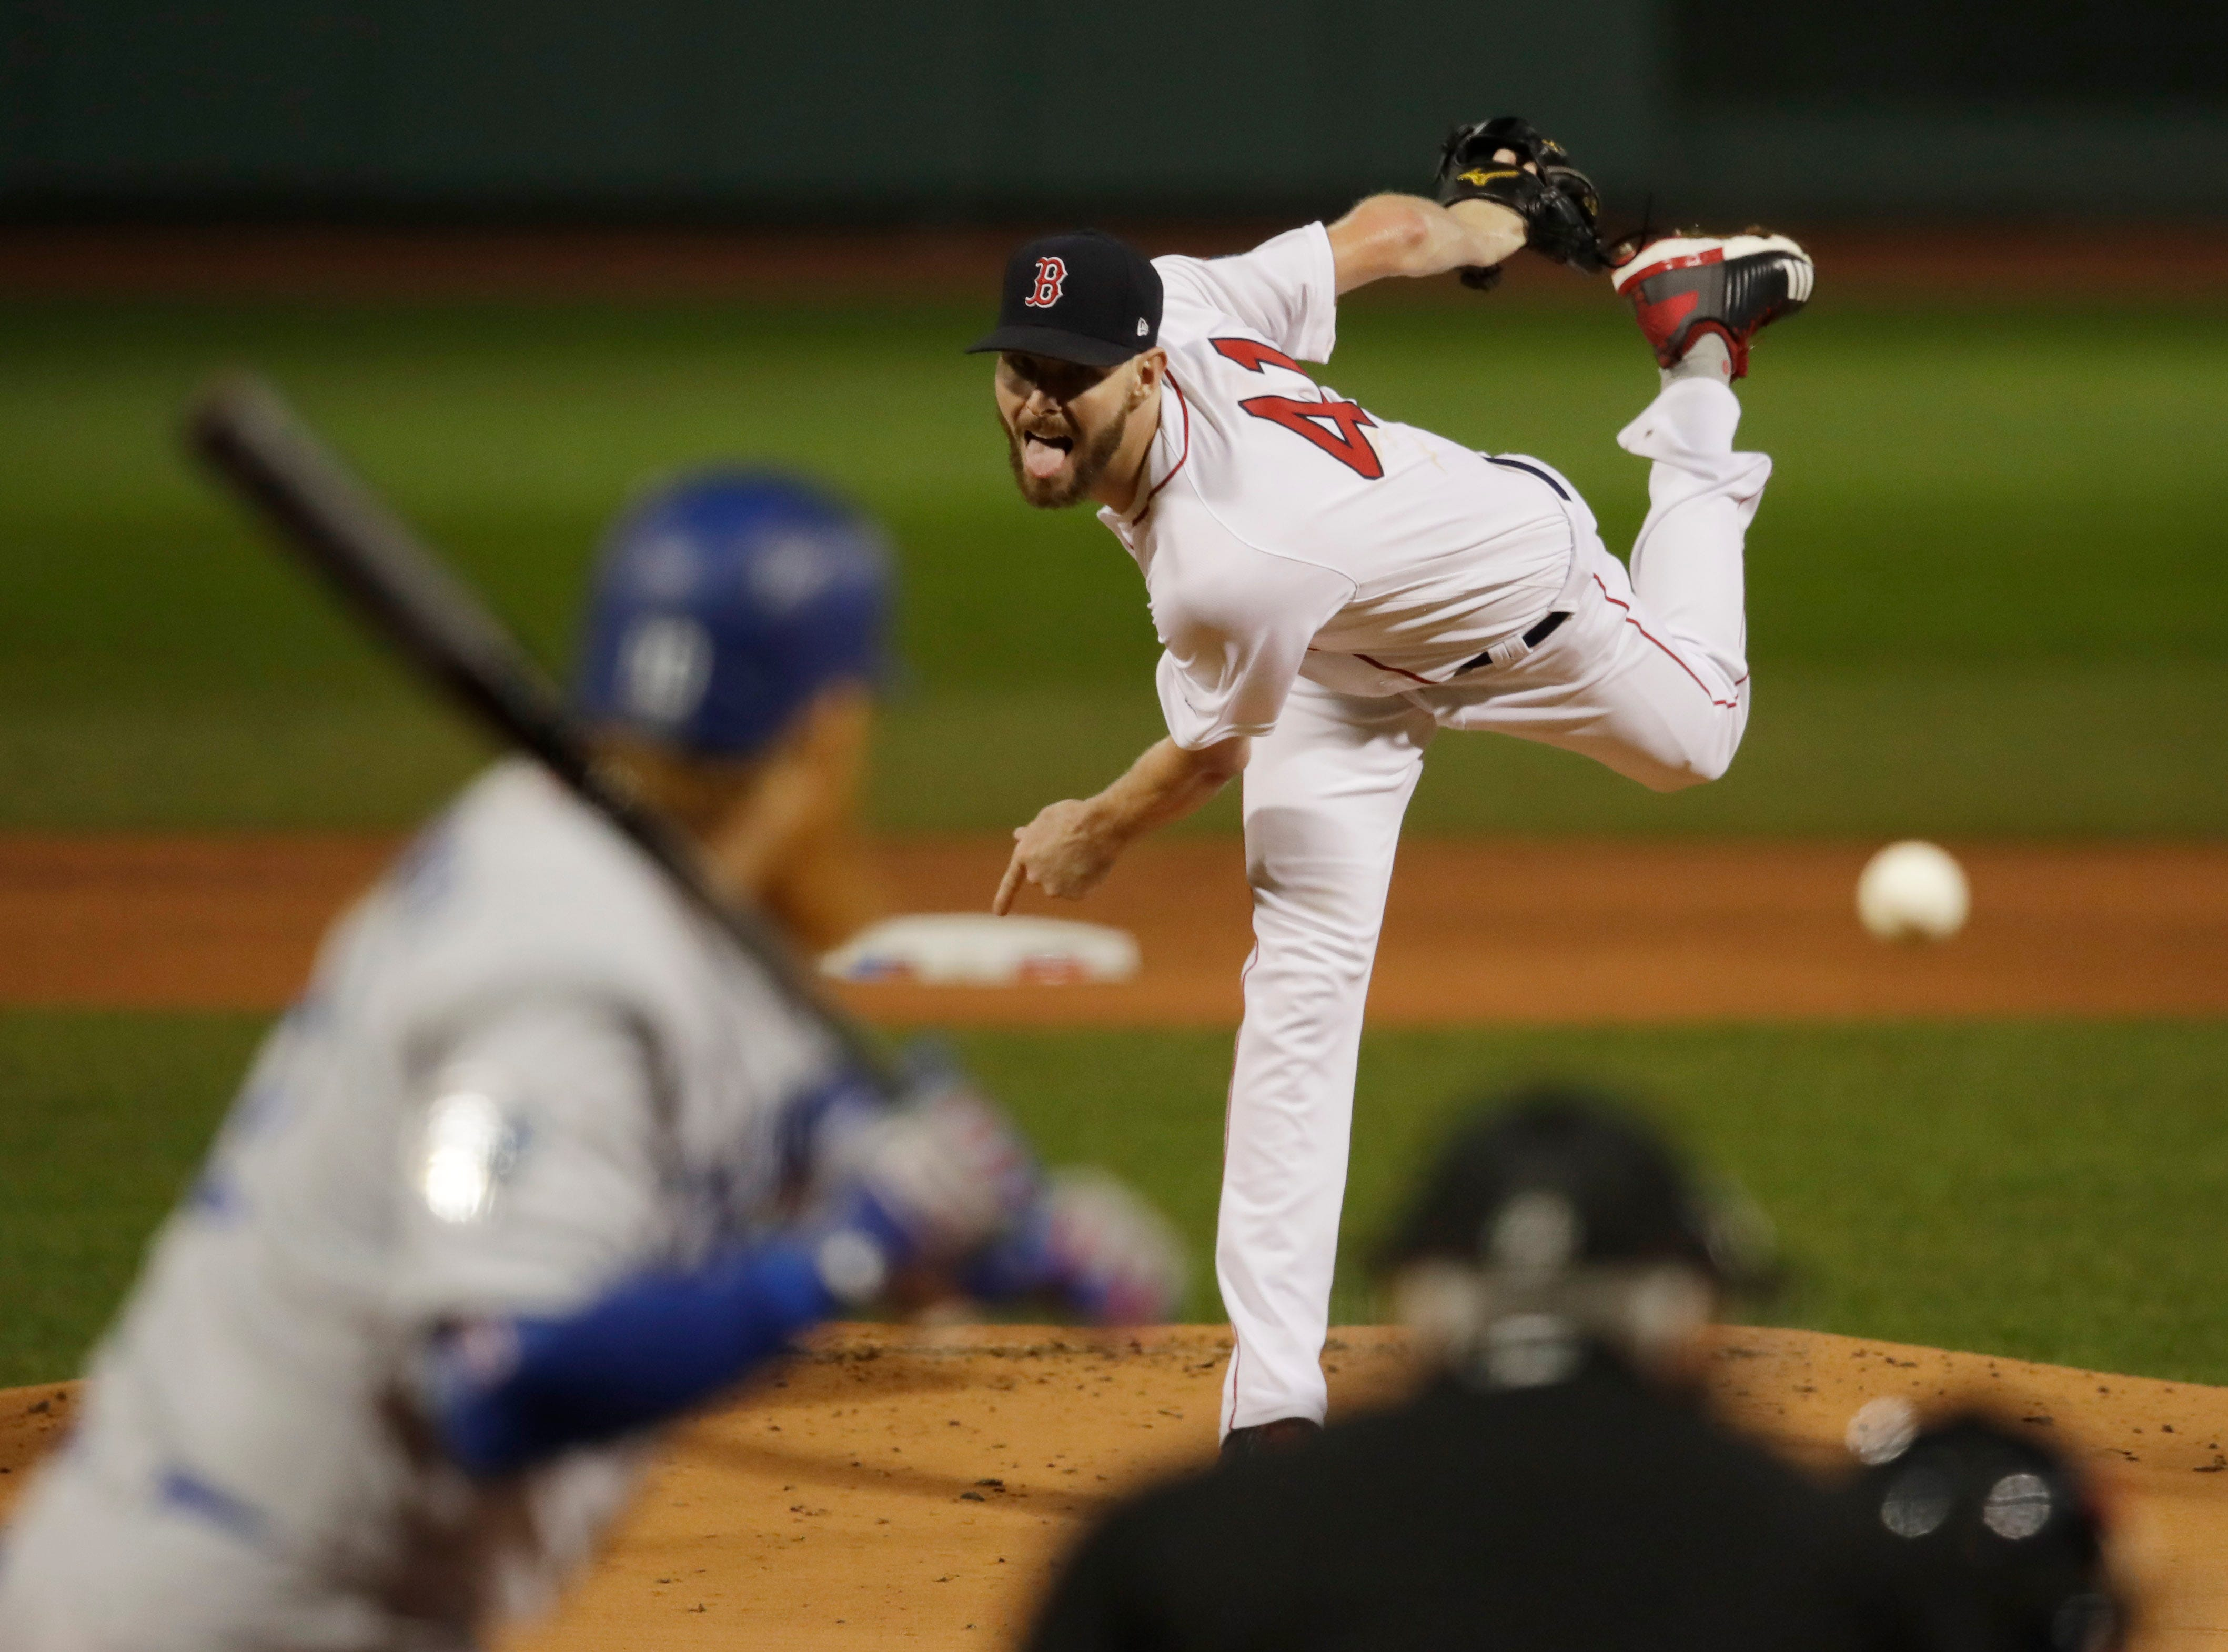 Game 1 at Fenway Park: Chris Sale throws a pitch in the first inning.